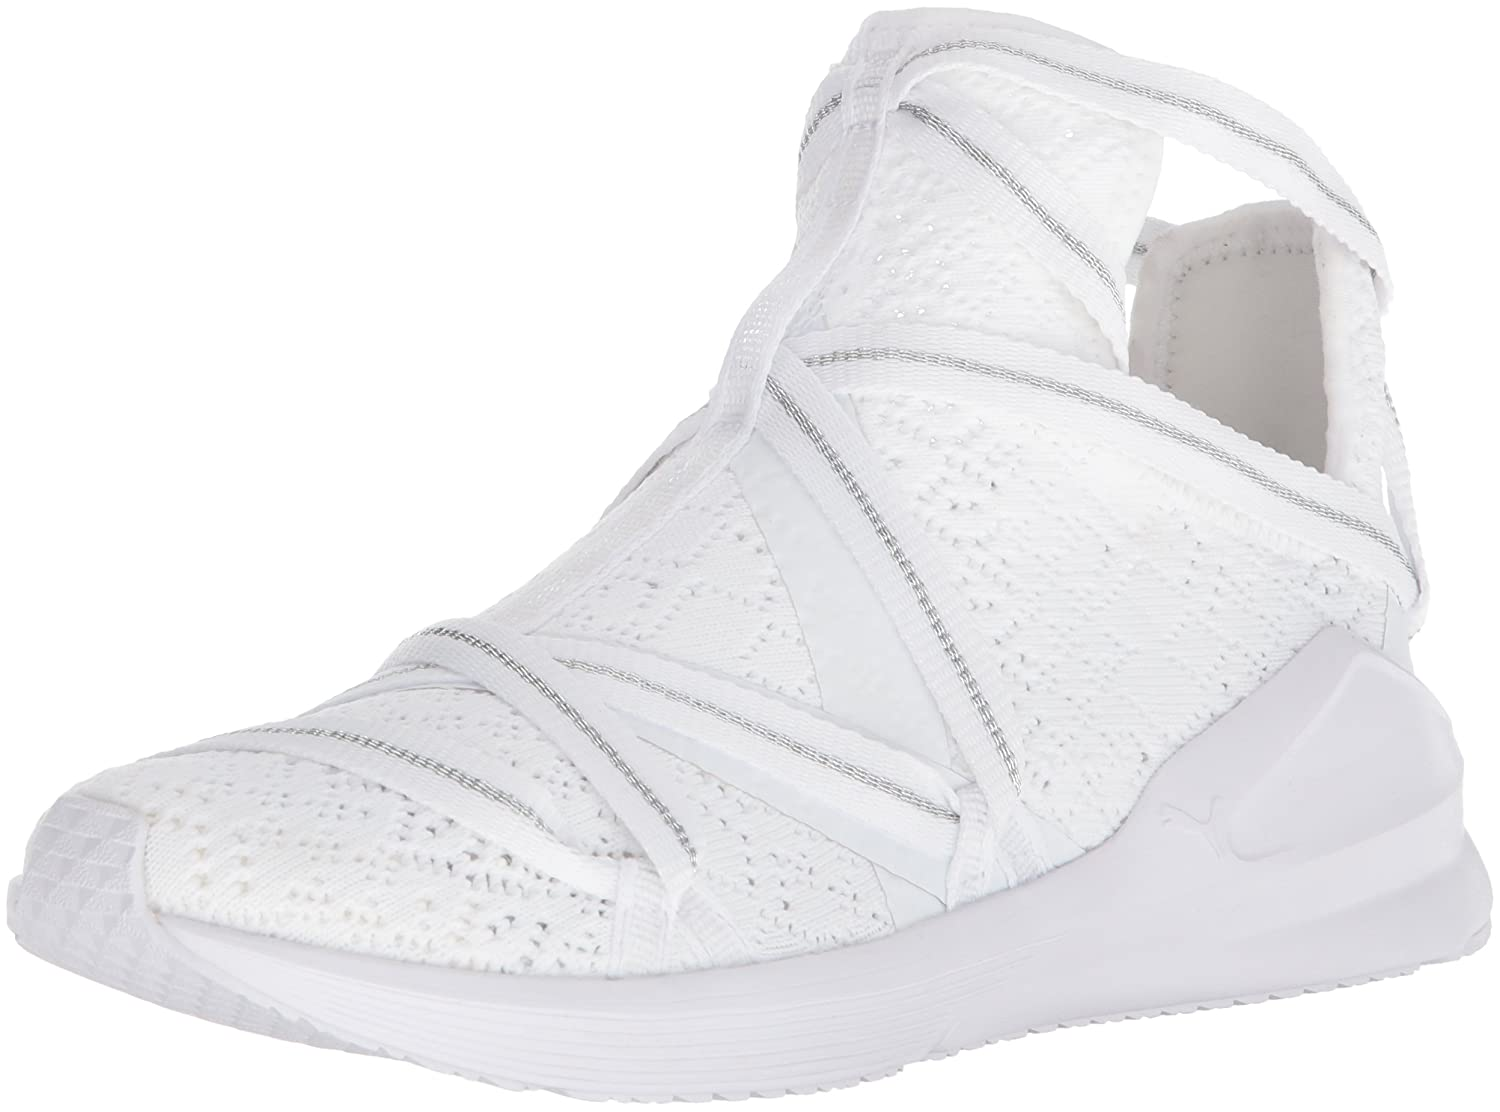 PUMA Women's Fierce Rope En Pointe Wn Sneaker B071K695HH 10 B(M) US|Puma White-puma White